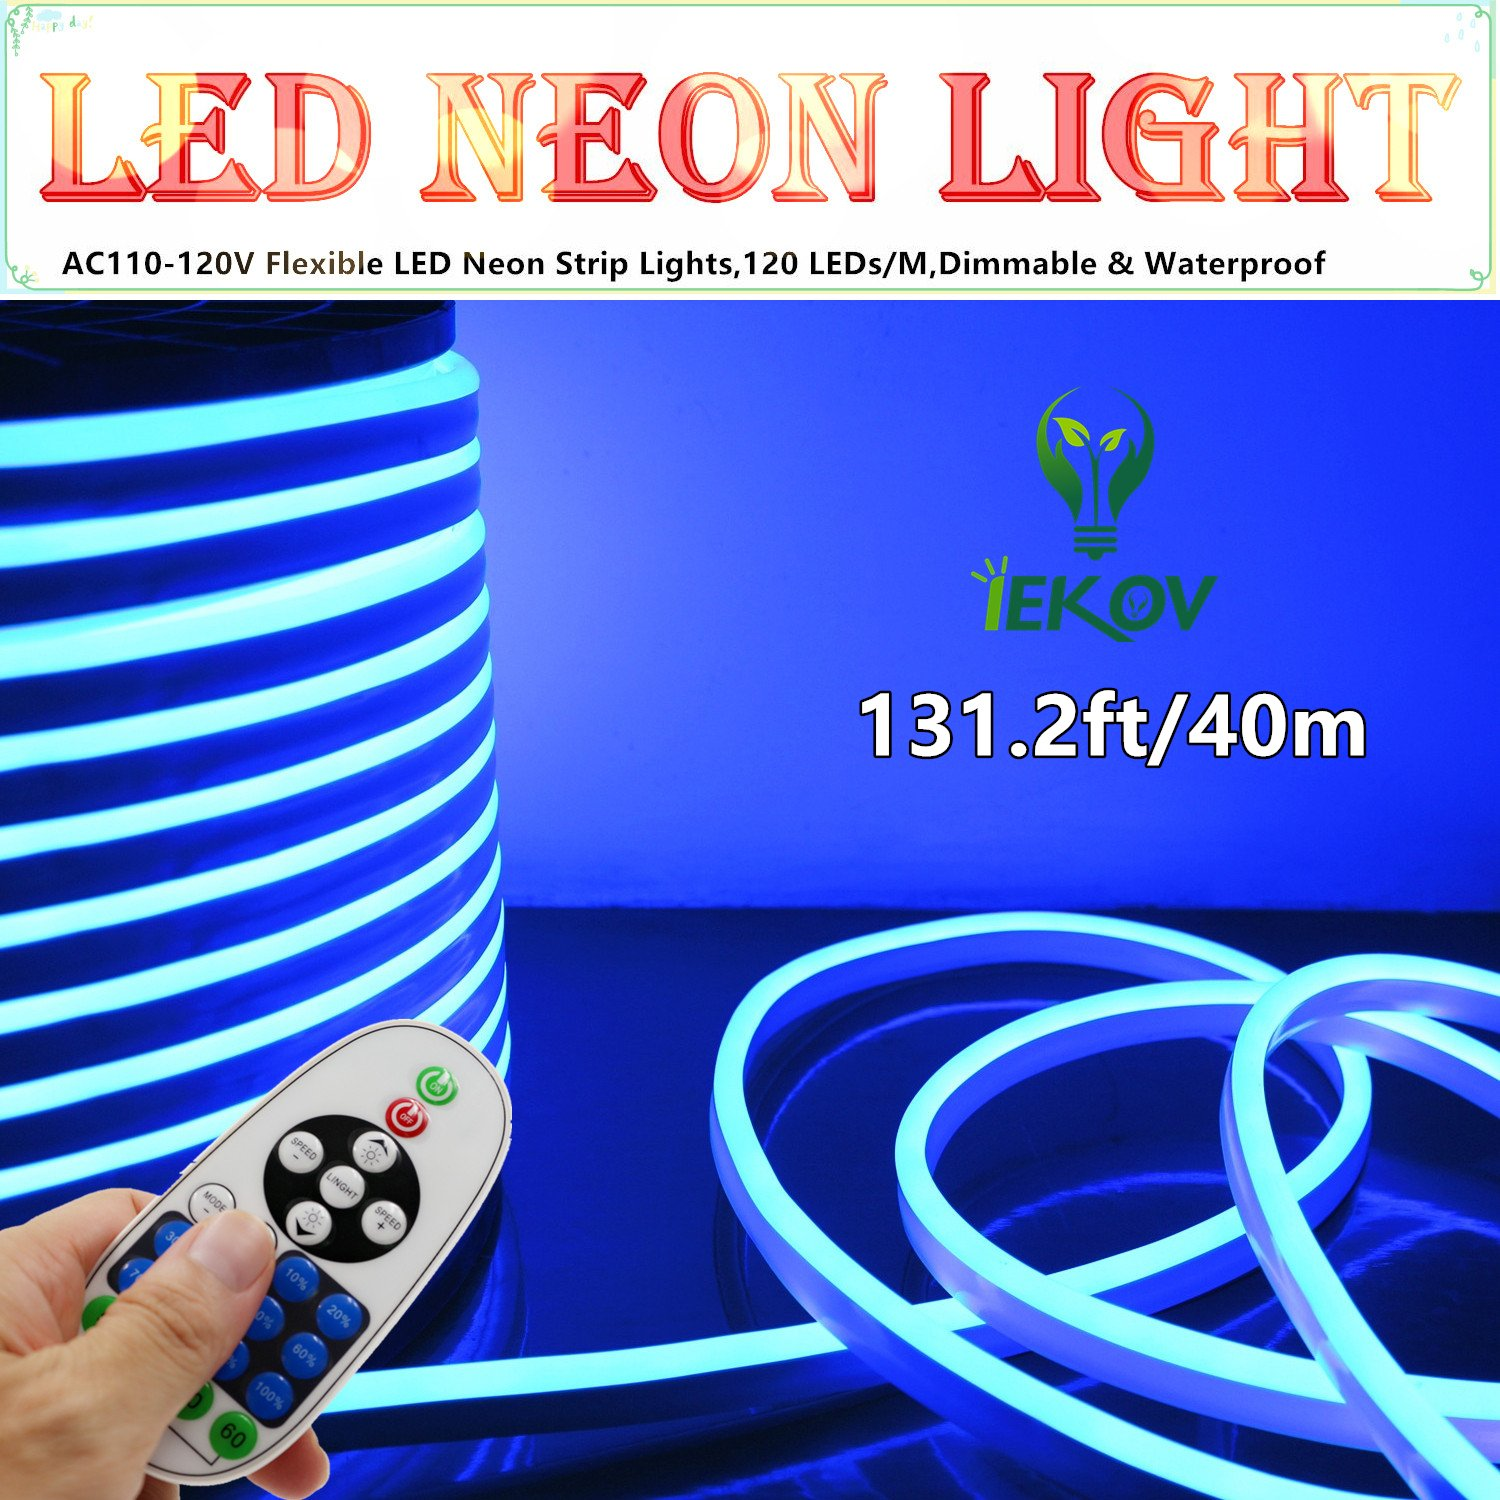 LED NEON LIGHT, IEKOV™ AC 110-120V Flexible LED Neon Strip Lights, 120 LEDs/M, Dimmable, Waterproof 2835 SMD LED Rope Light + Remote Controller for Home Decoration (131.2ft/40m, Blue)